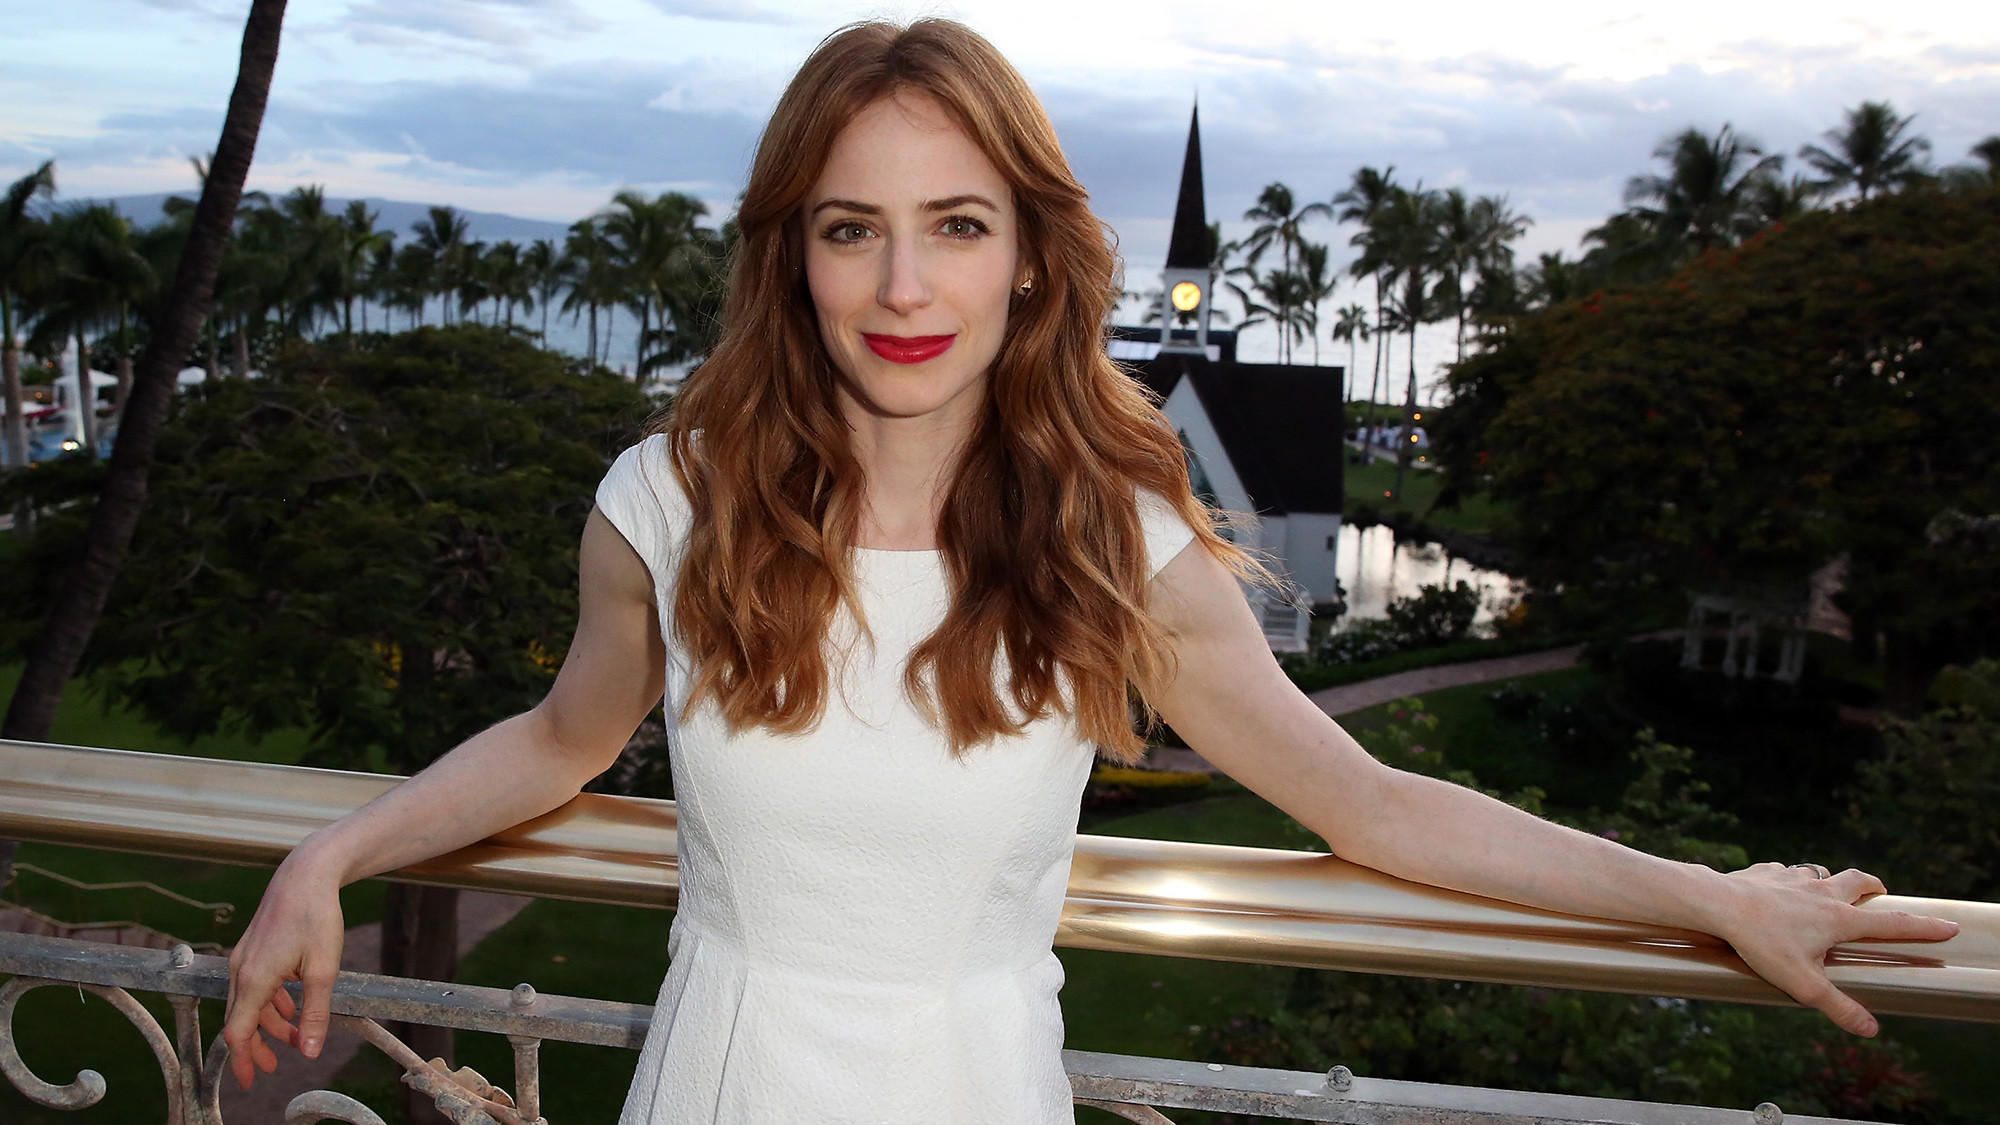 The model says she has also asked her famous family not to come to her - Jaime Ray Newman In 2014